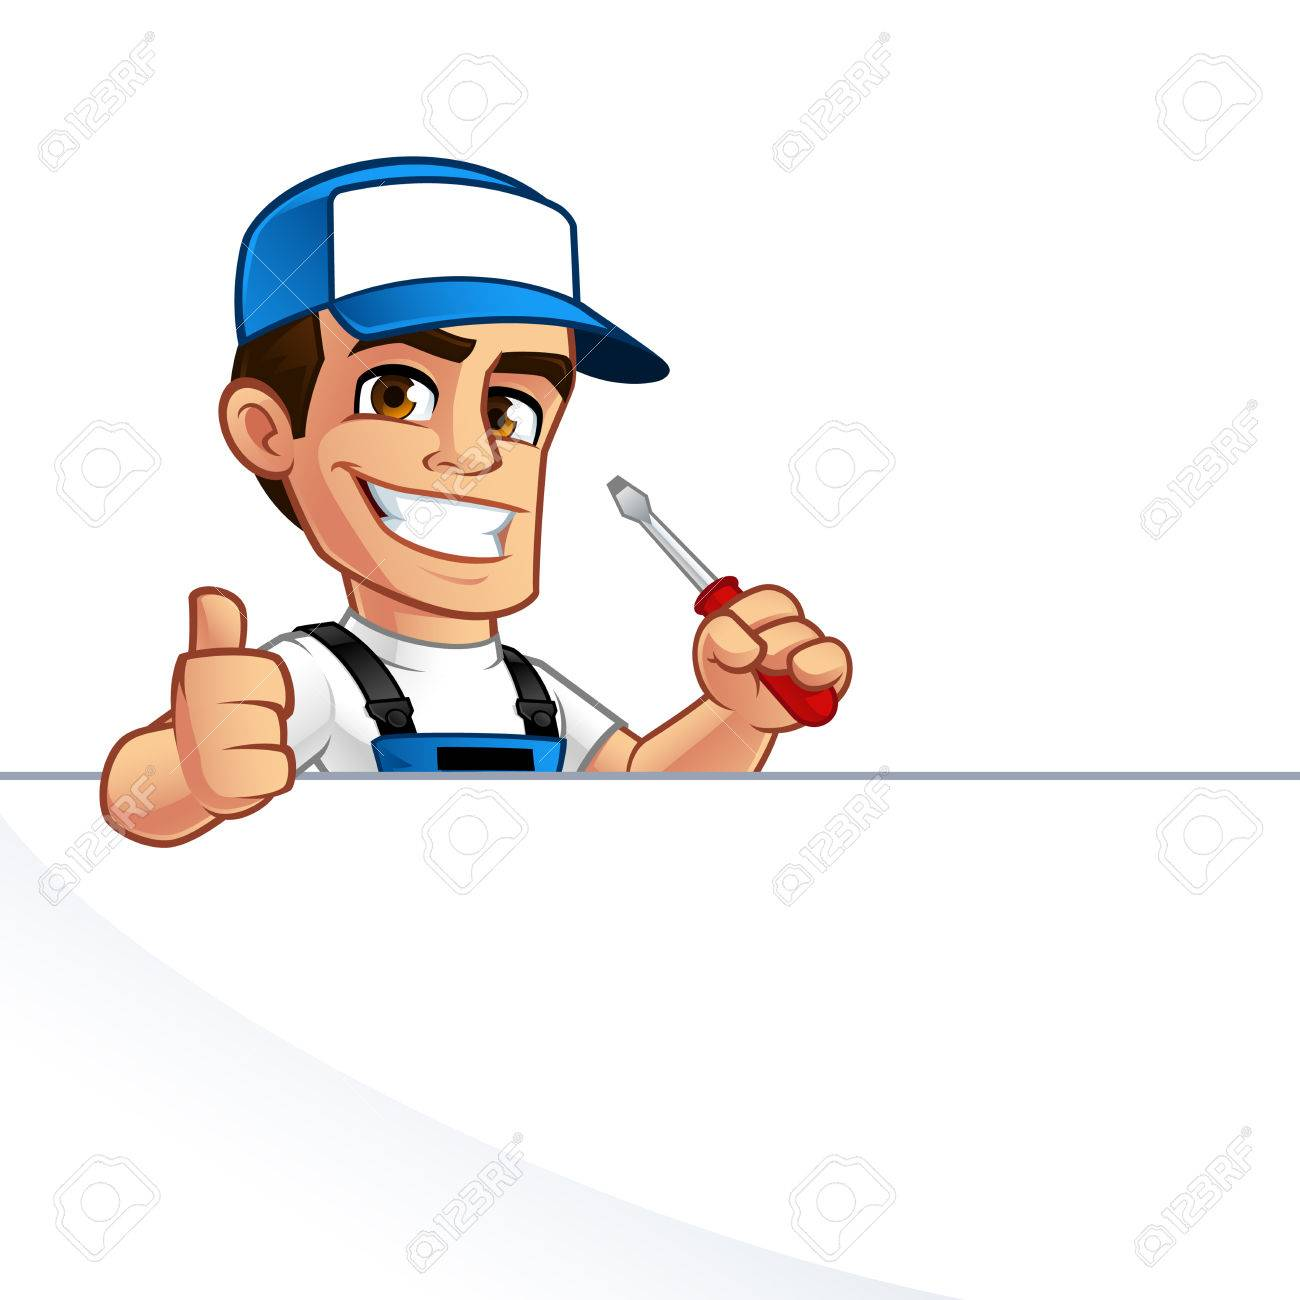 Electrician, he has a screwdriver in his hand - 75375435